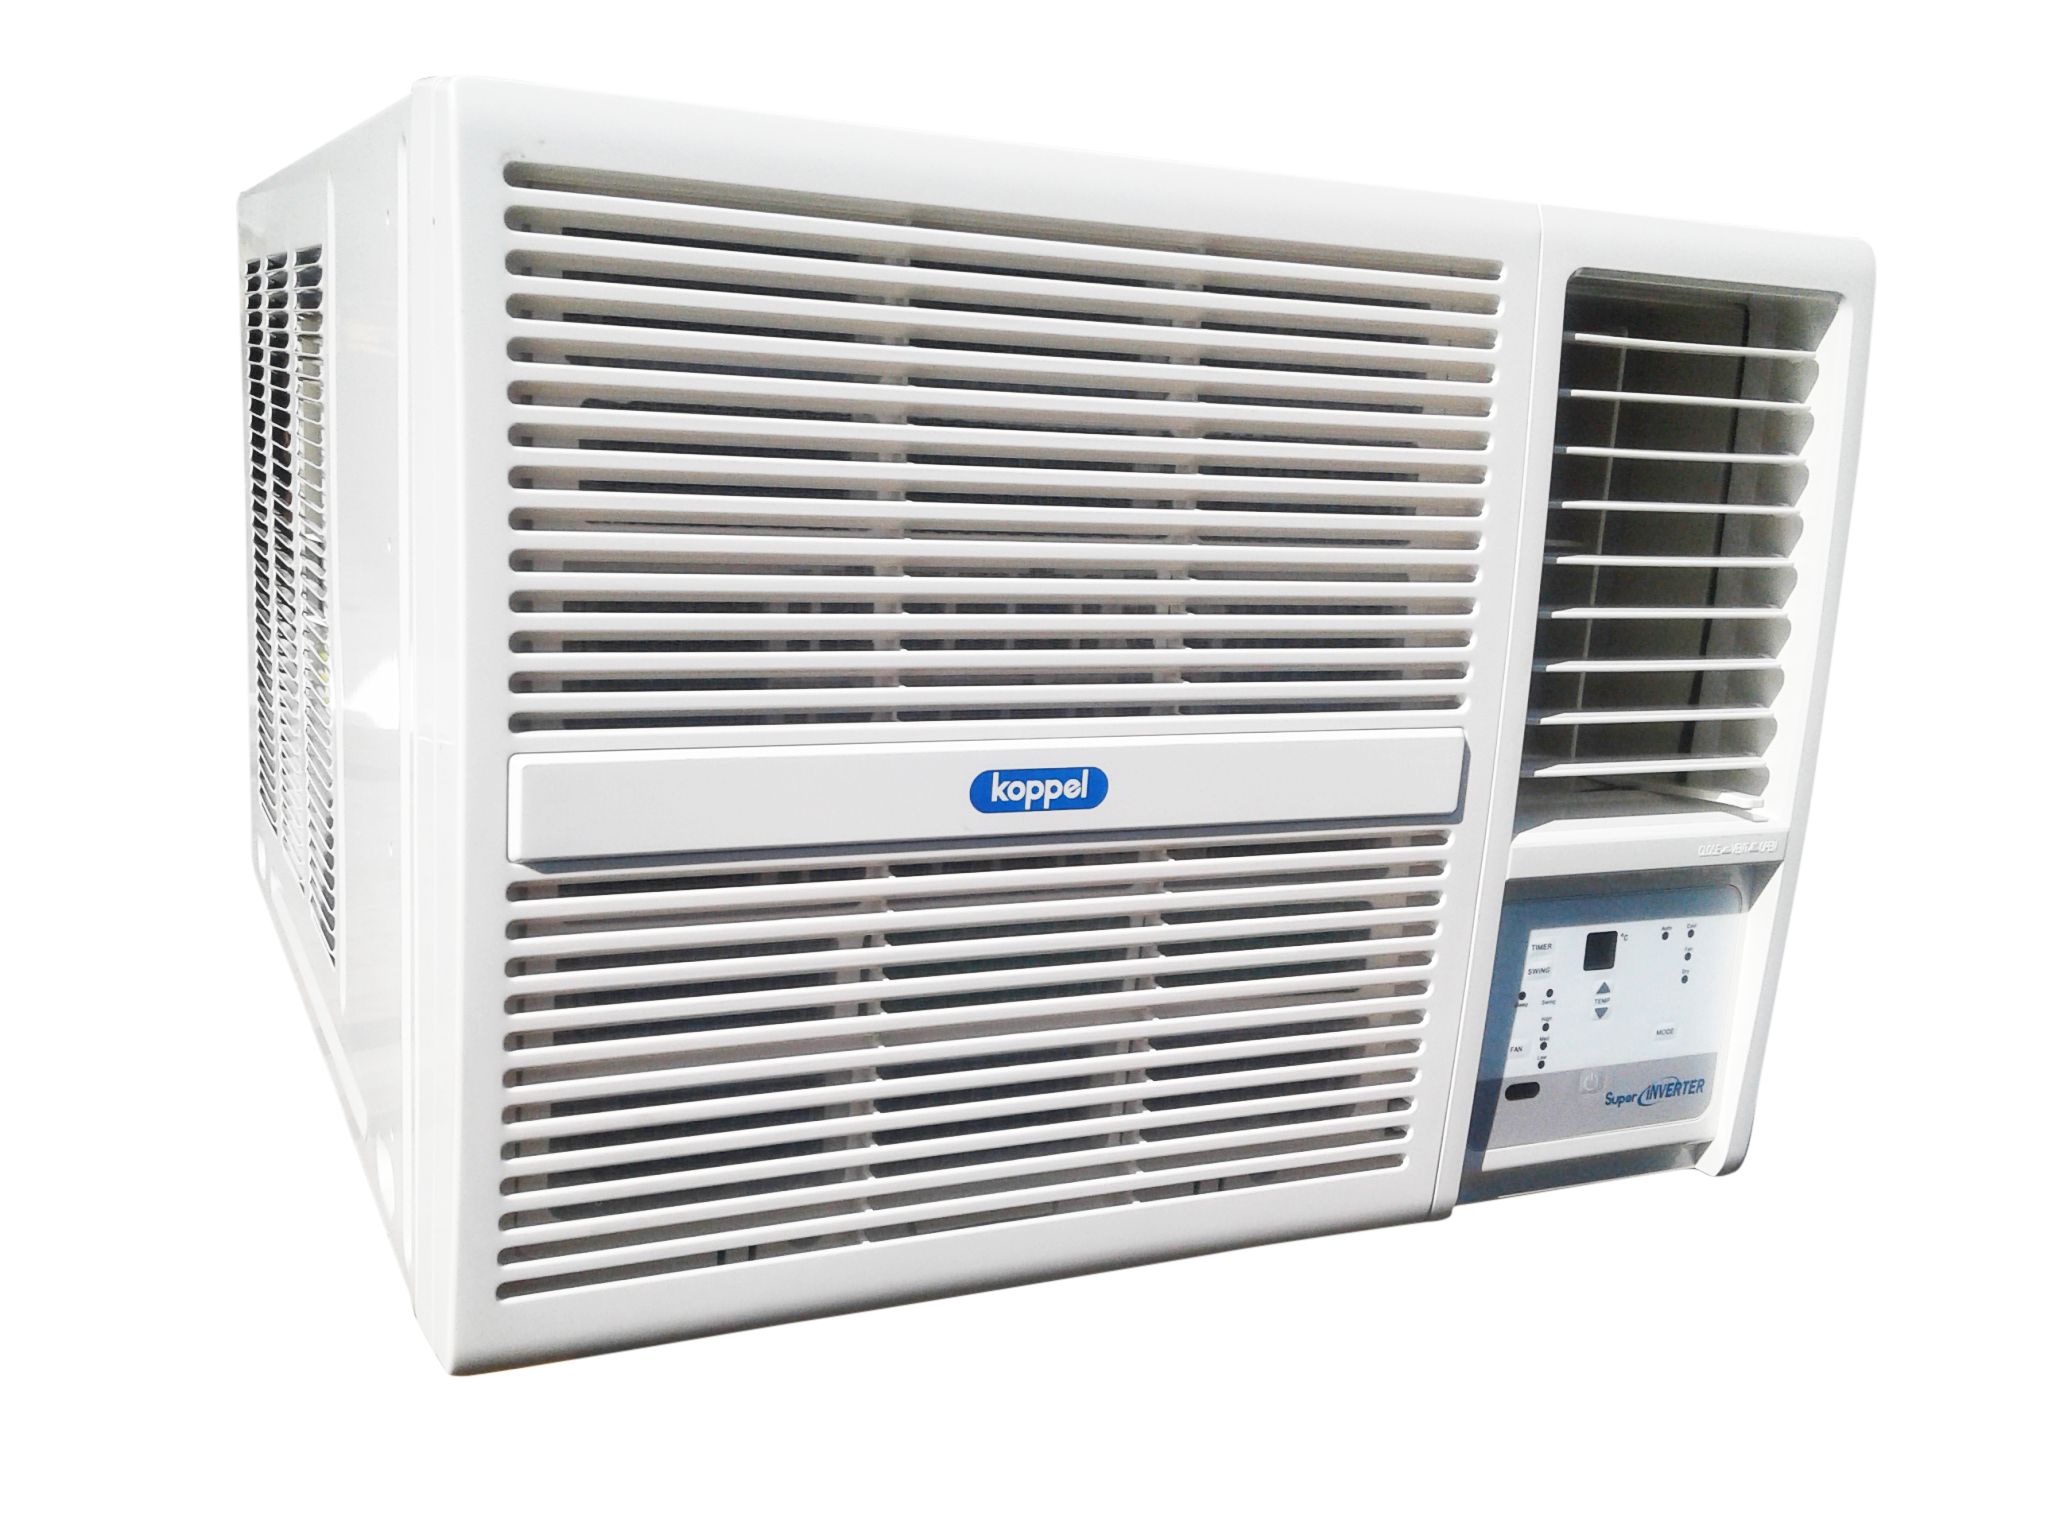 #4E6171 Window Type Inverter Koppel Best 4823 Inverter Window Ac photos with 2048x1536 px on helpvideos.info - Air Conditioners, Air Coolers and more